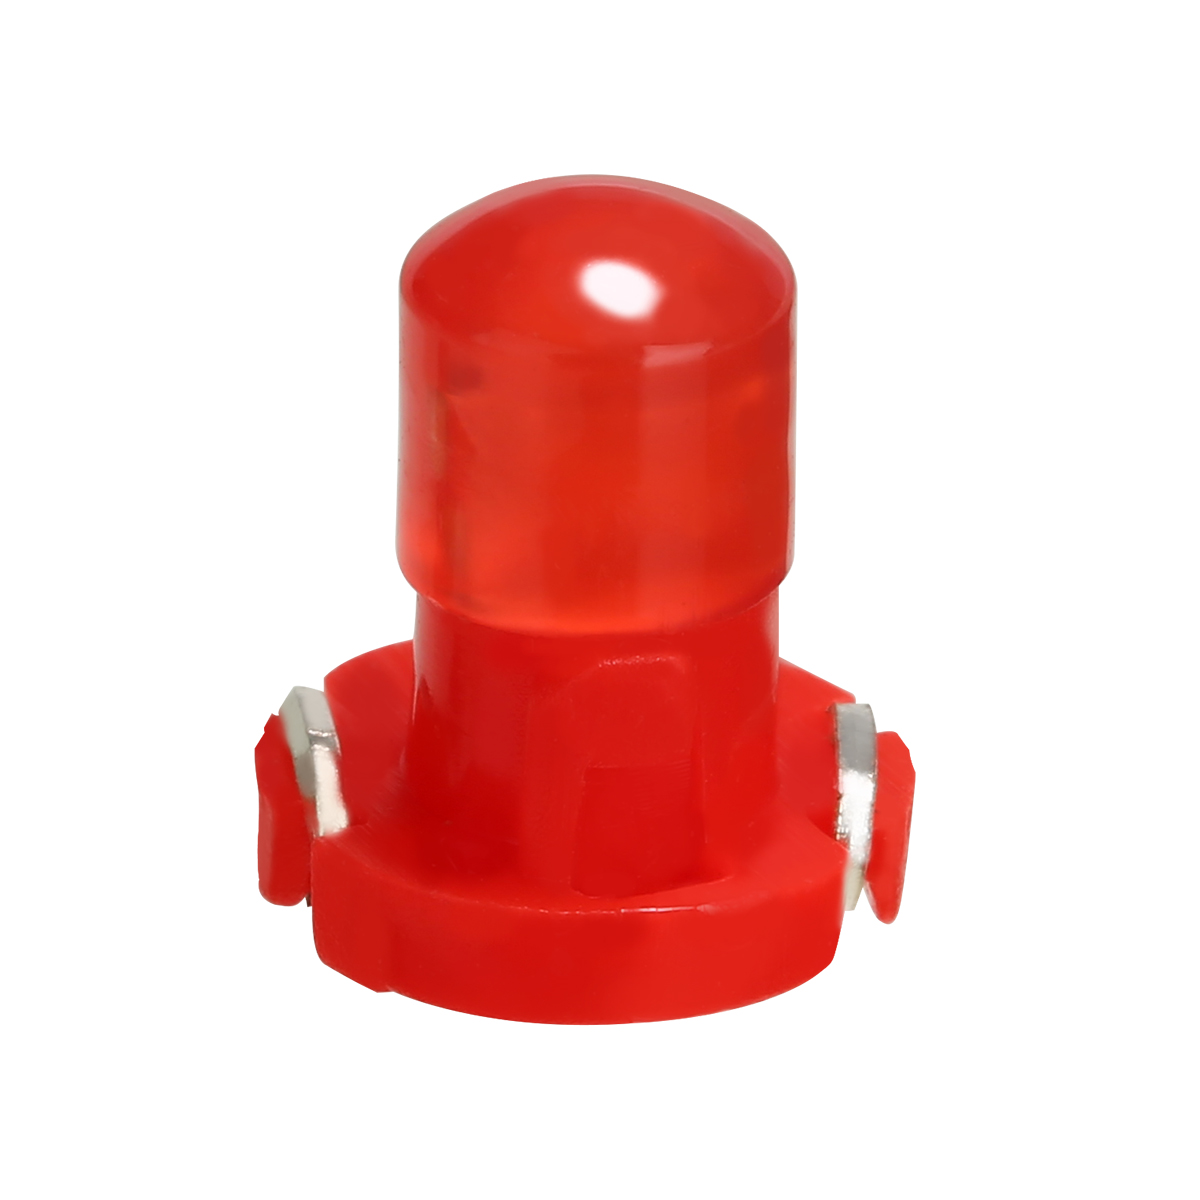 Mayitr 10pcs Car Red <font><b>T3</b></font> LED Cluster Instrument Light <font><b>12V</b></font> Super Bright Dash Climate Control Base Signal Bulb Lamp image